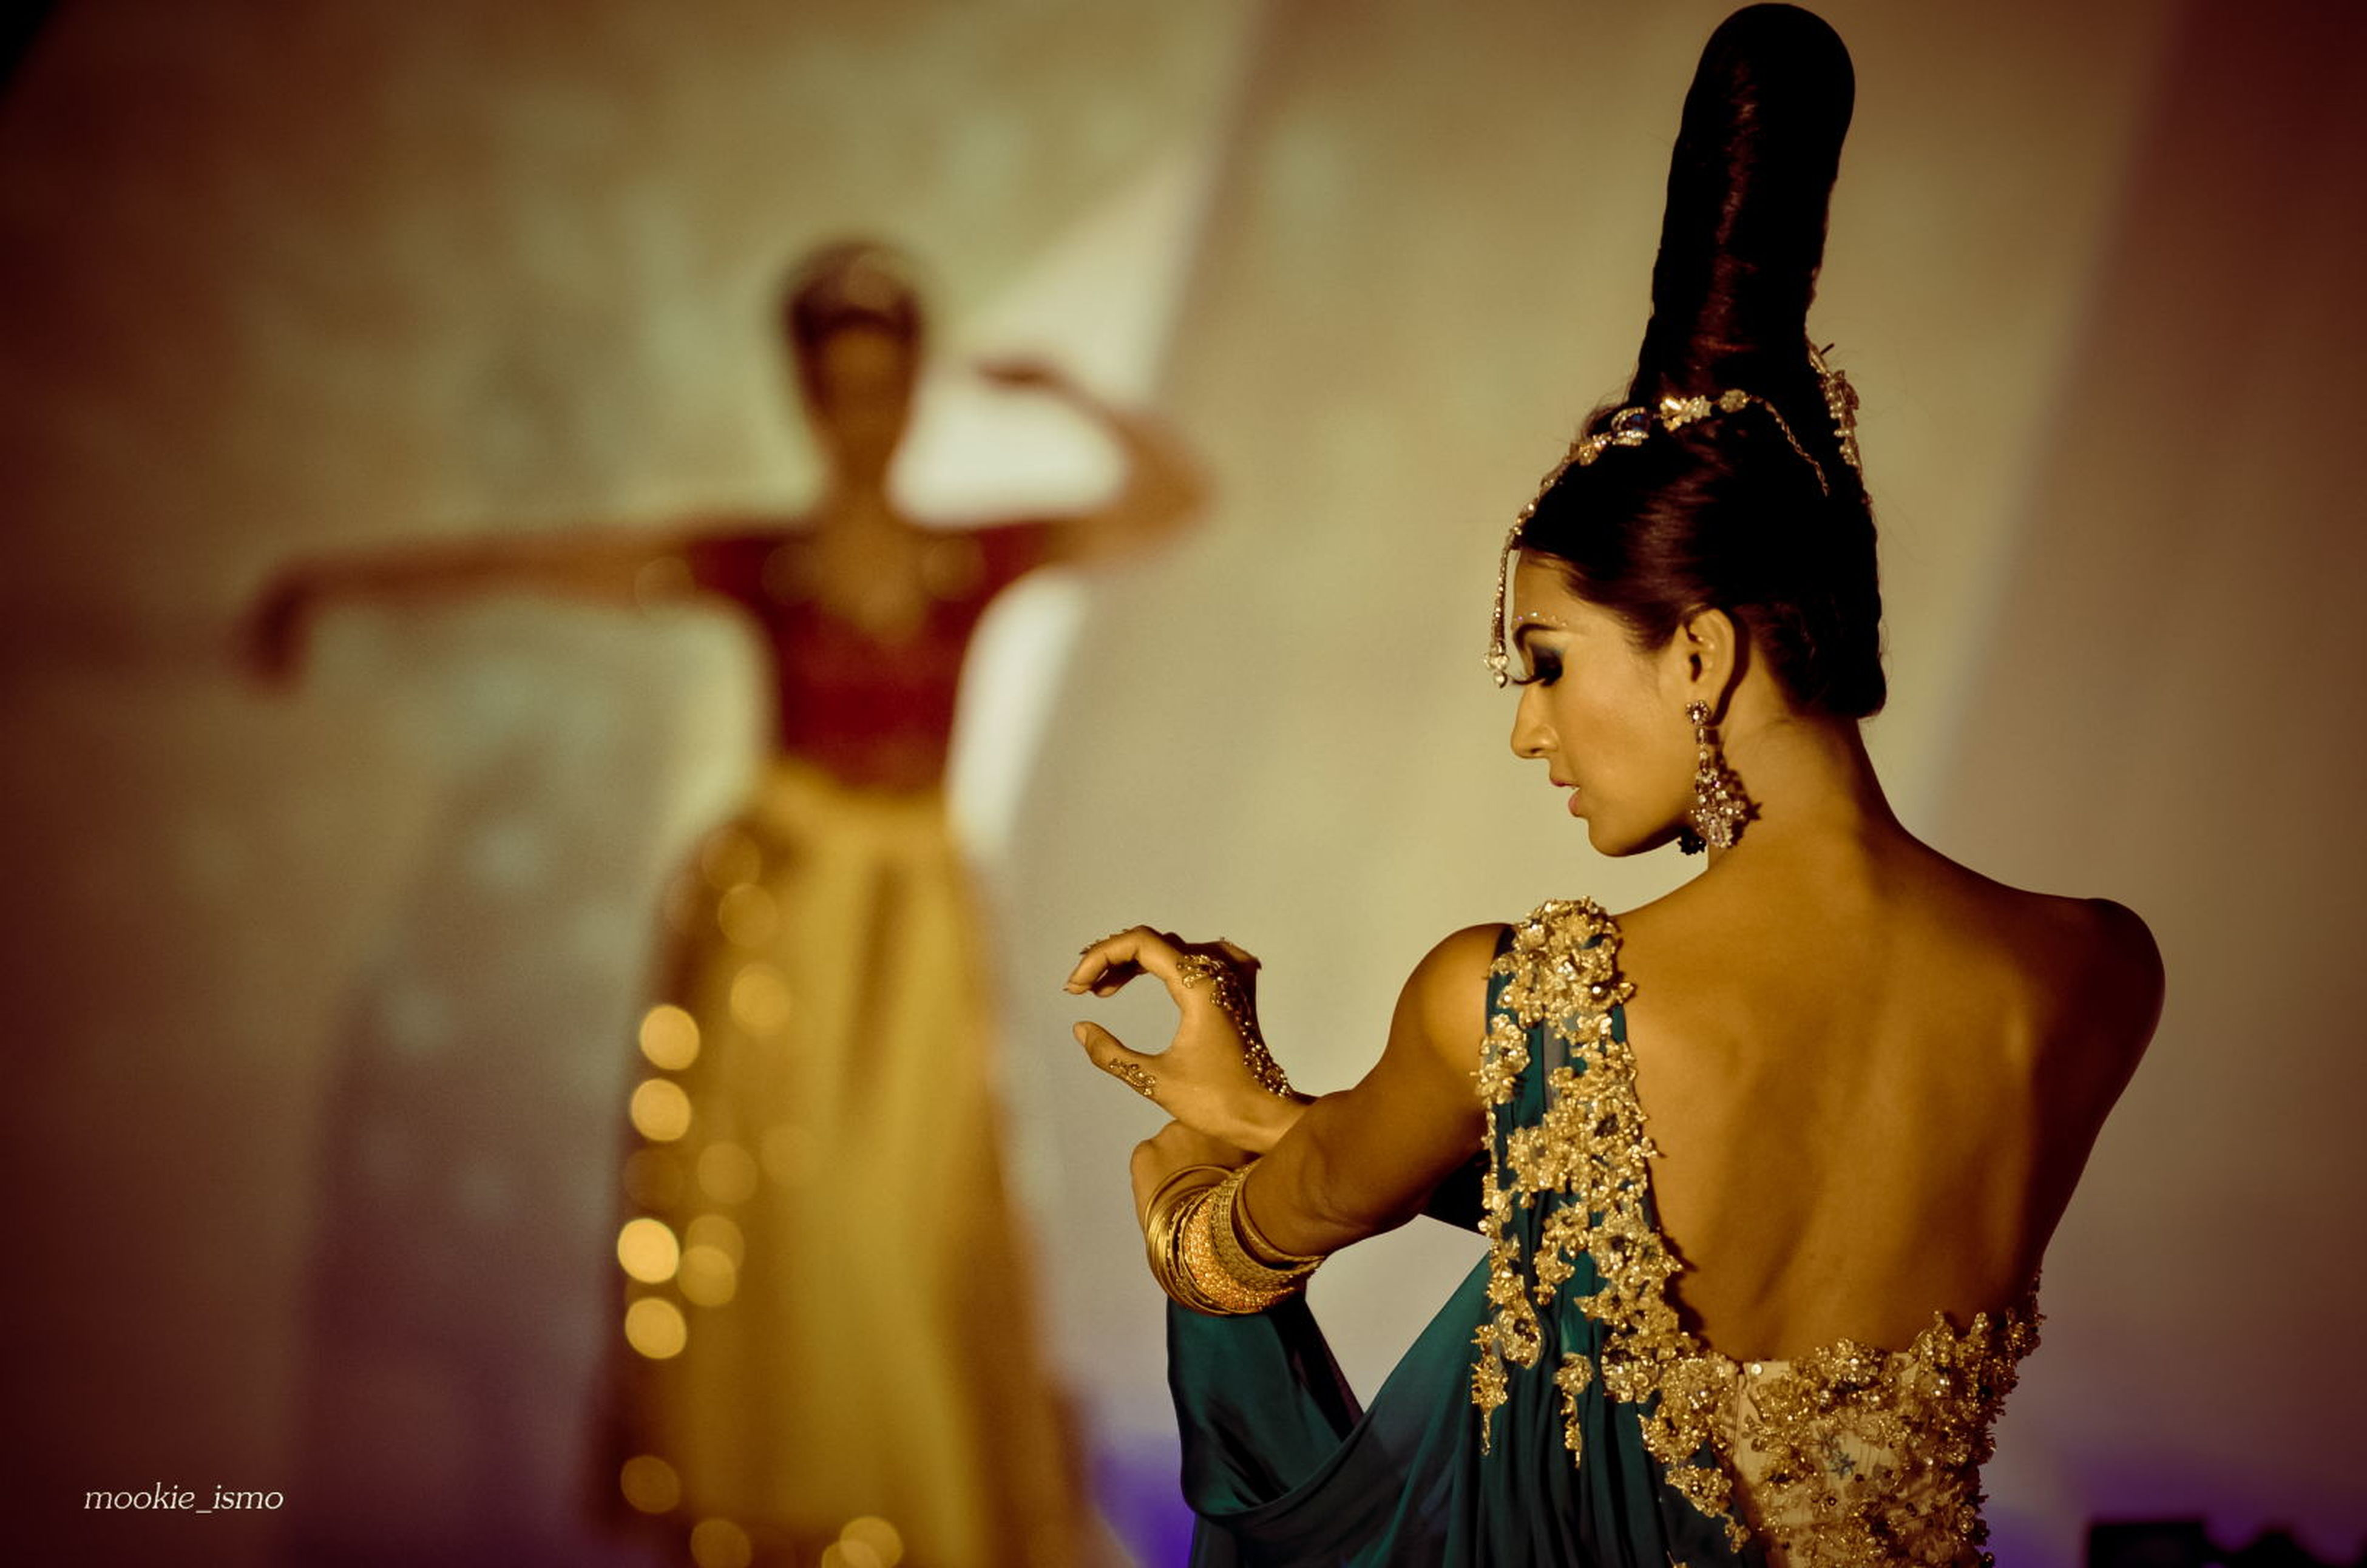 lifestyles, leisure activity, young adult, holding, casual clothing, standing, three quarter length, focus on foreground, person, arts culture and entertainment, waist up, indoors, front view, young women, music, illuminated, night, celebration